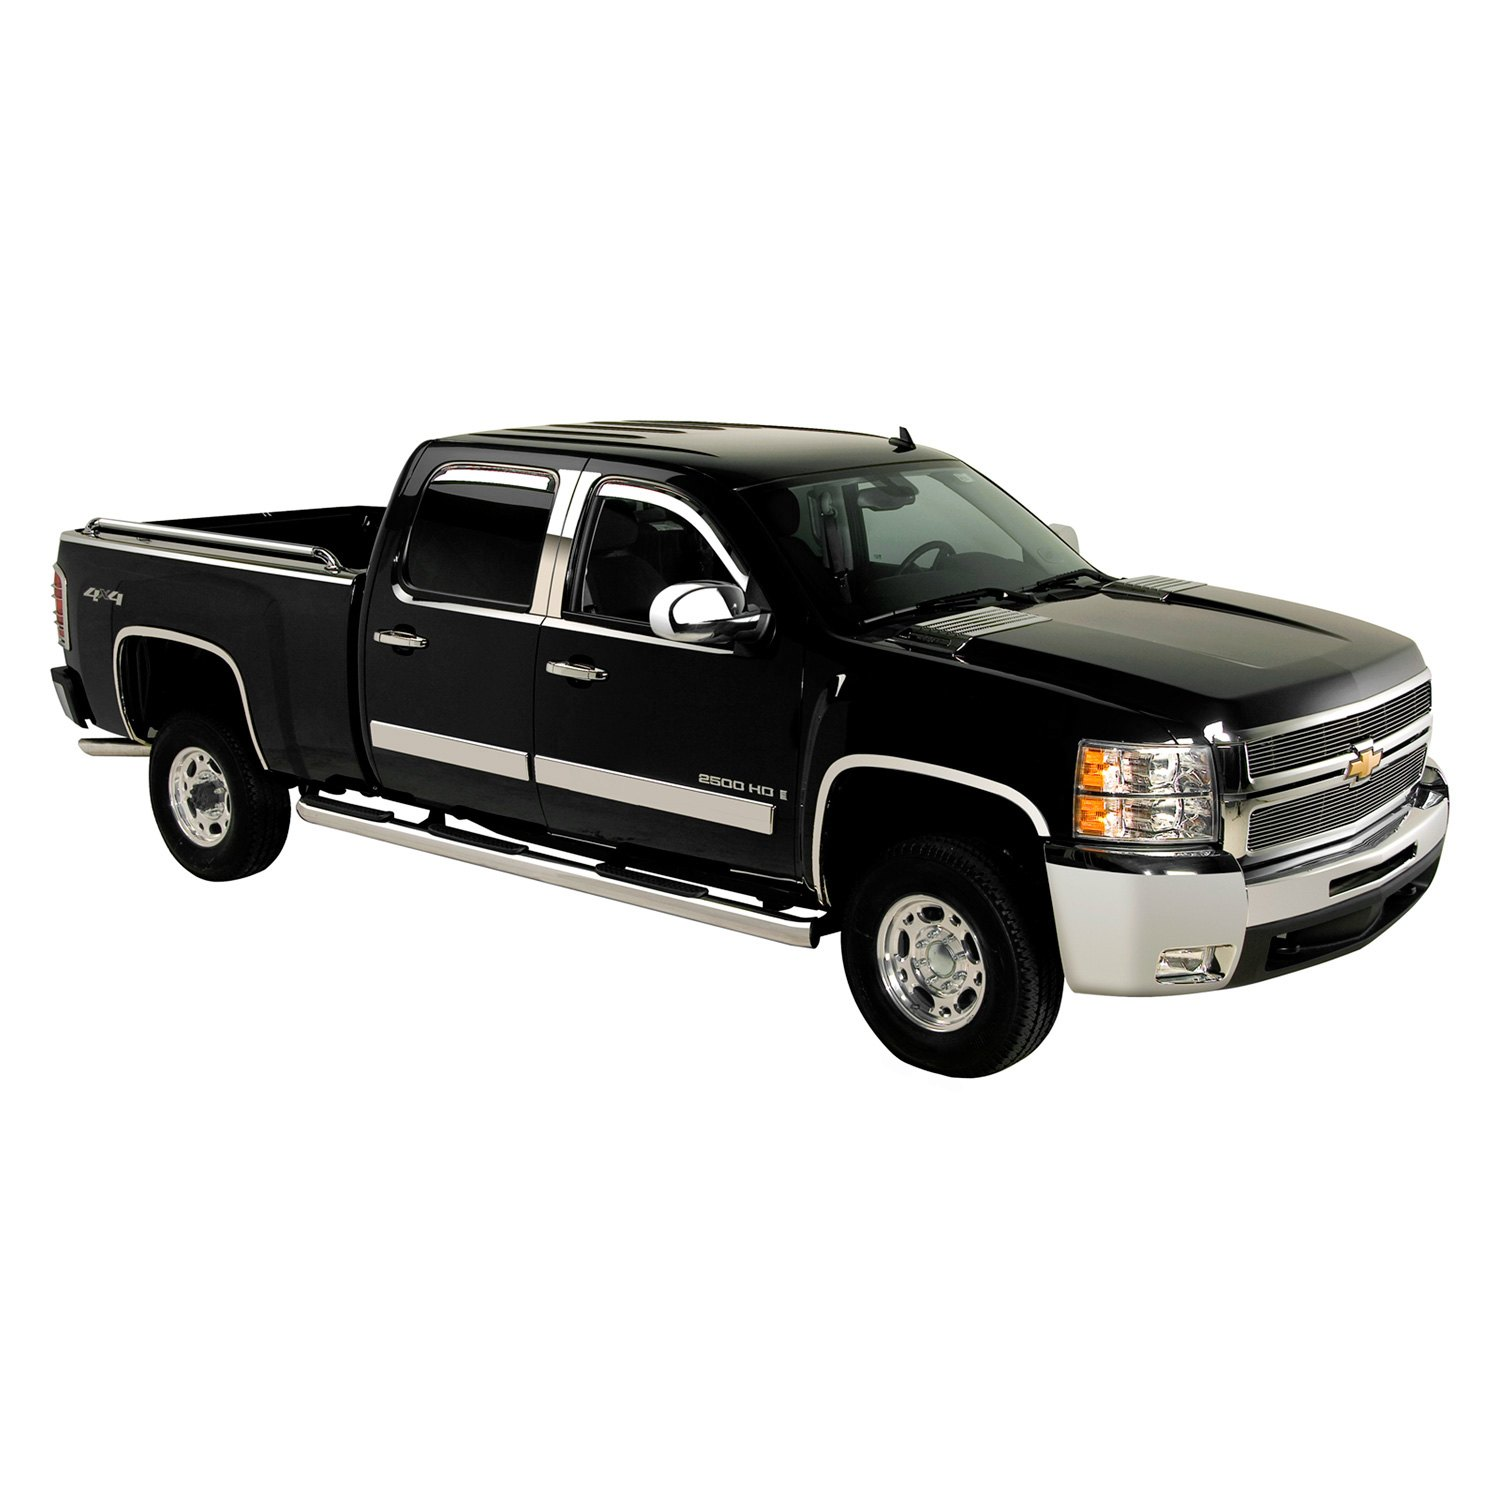 2009 chevy silverado chrome accessories trim at carid. Black Bedroom Furniture Sets. Home Design Ideas